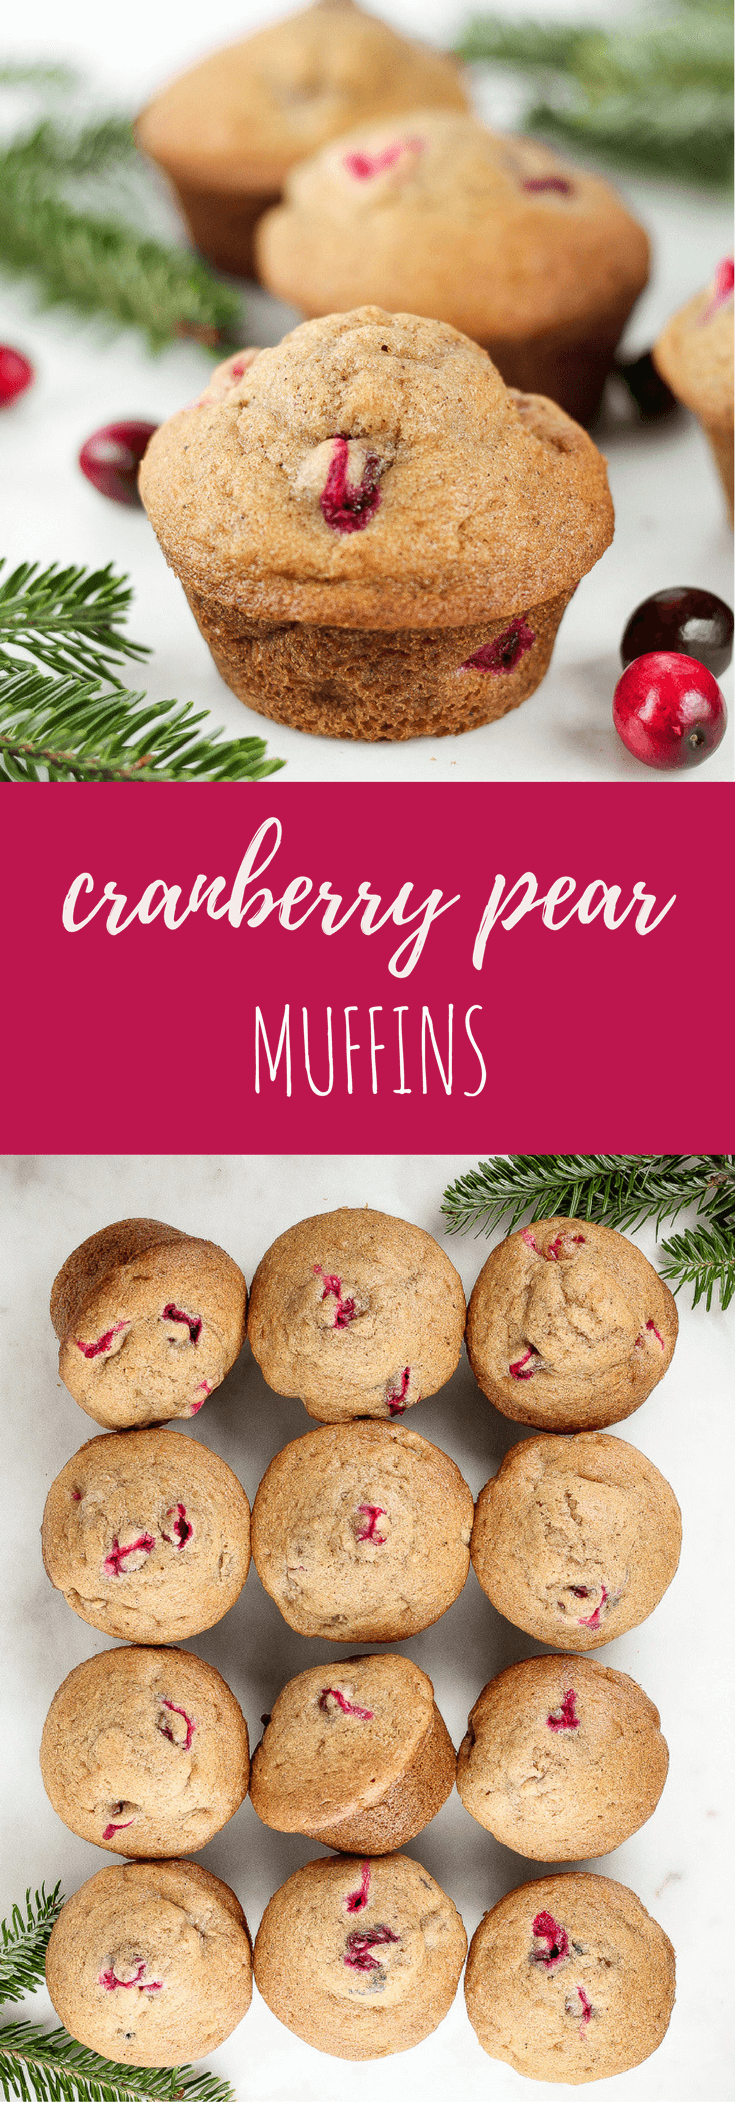 Cranberry Pear Muffins - Flour Covered Apron